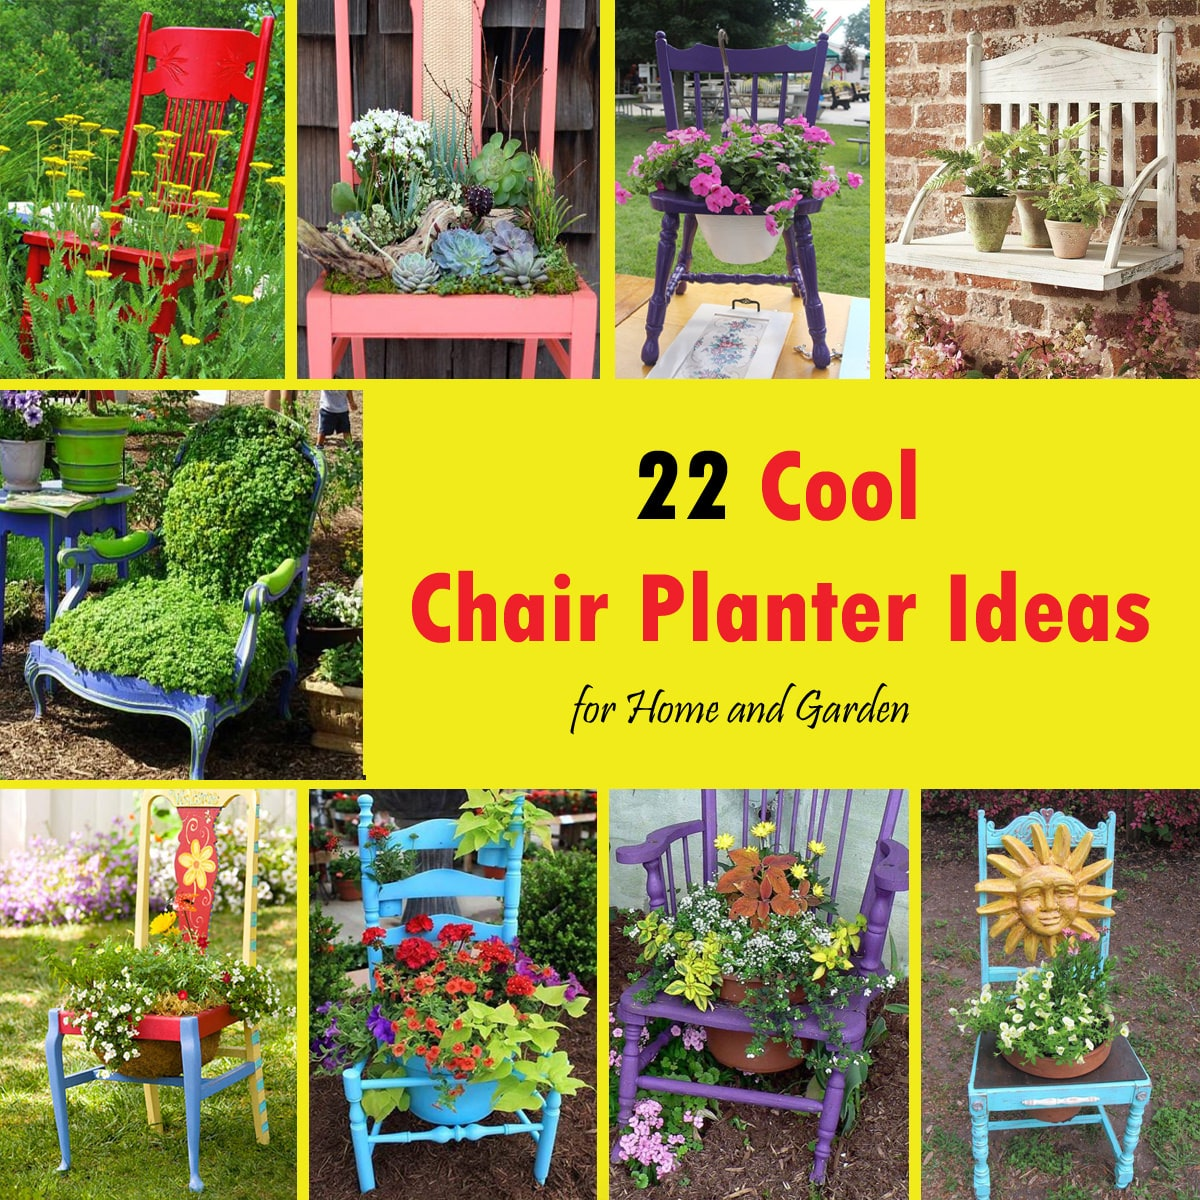 22 Cool Chair planter ideas for Home and Garden | Balcony Garden Web